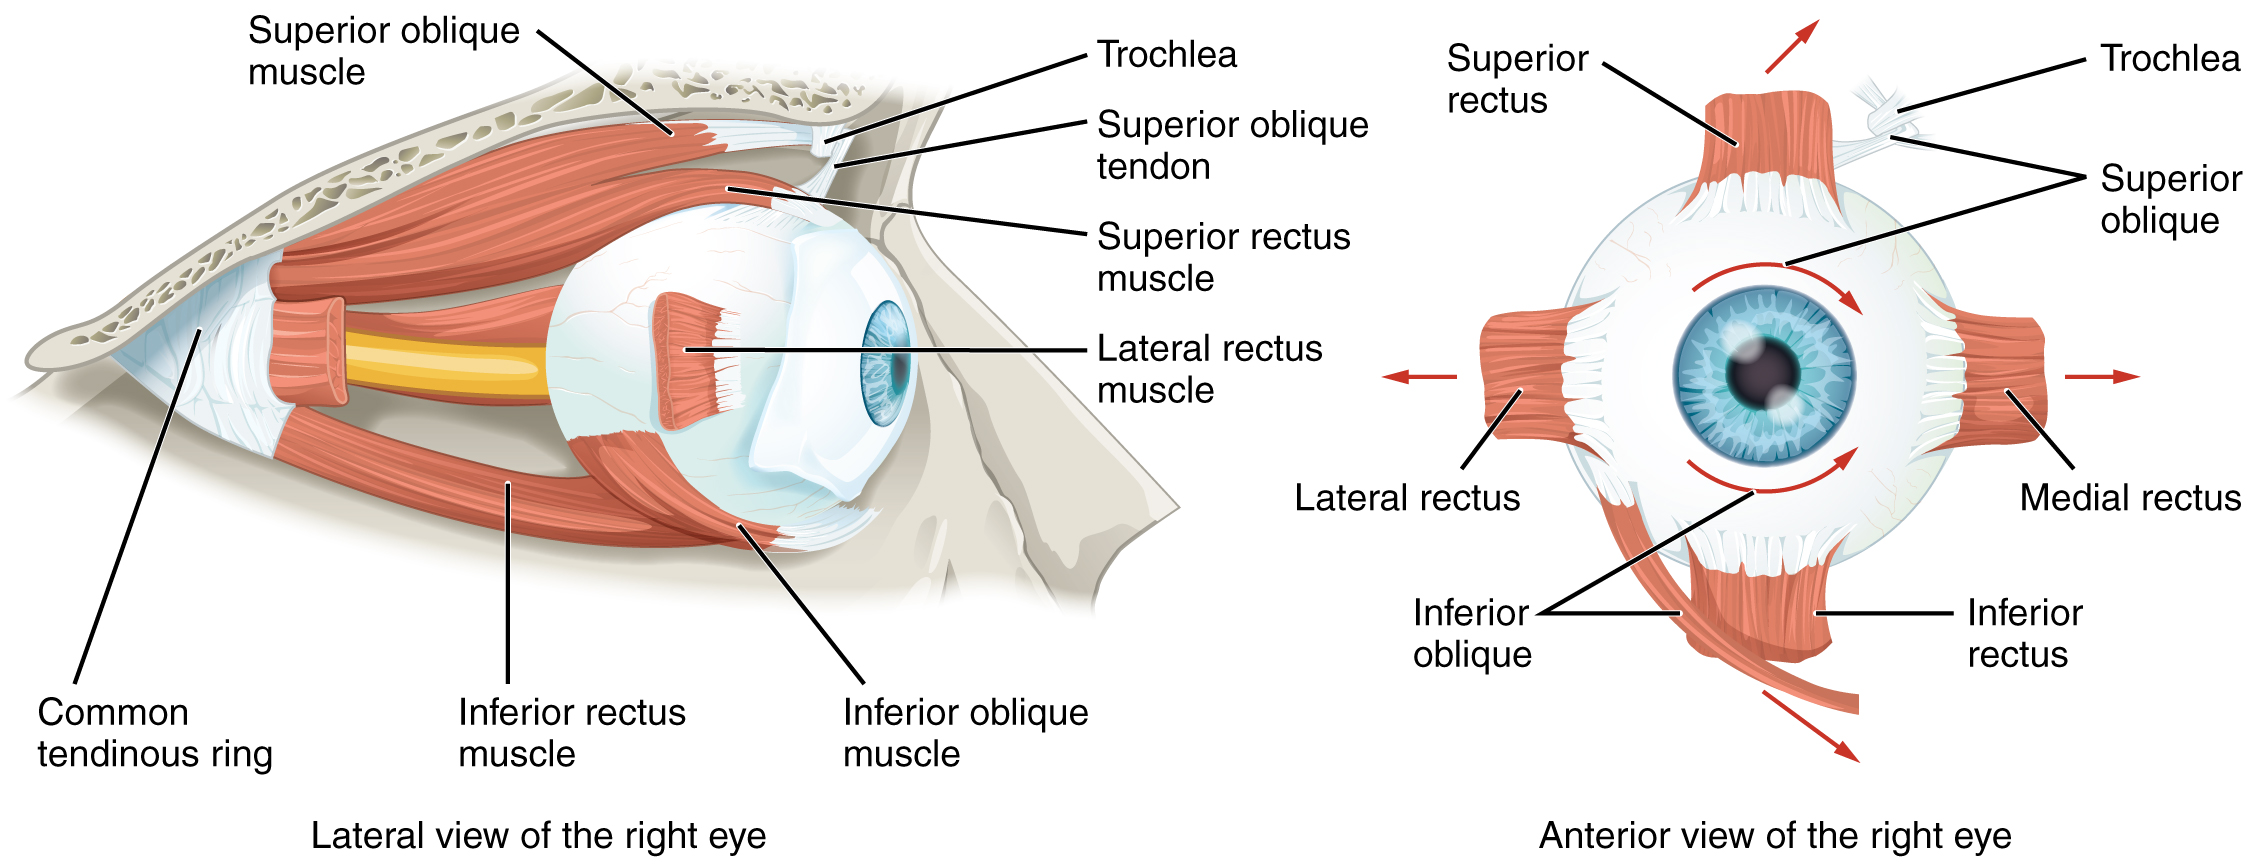 Anatomy Of The Eye And Extraocular Muscles